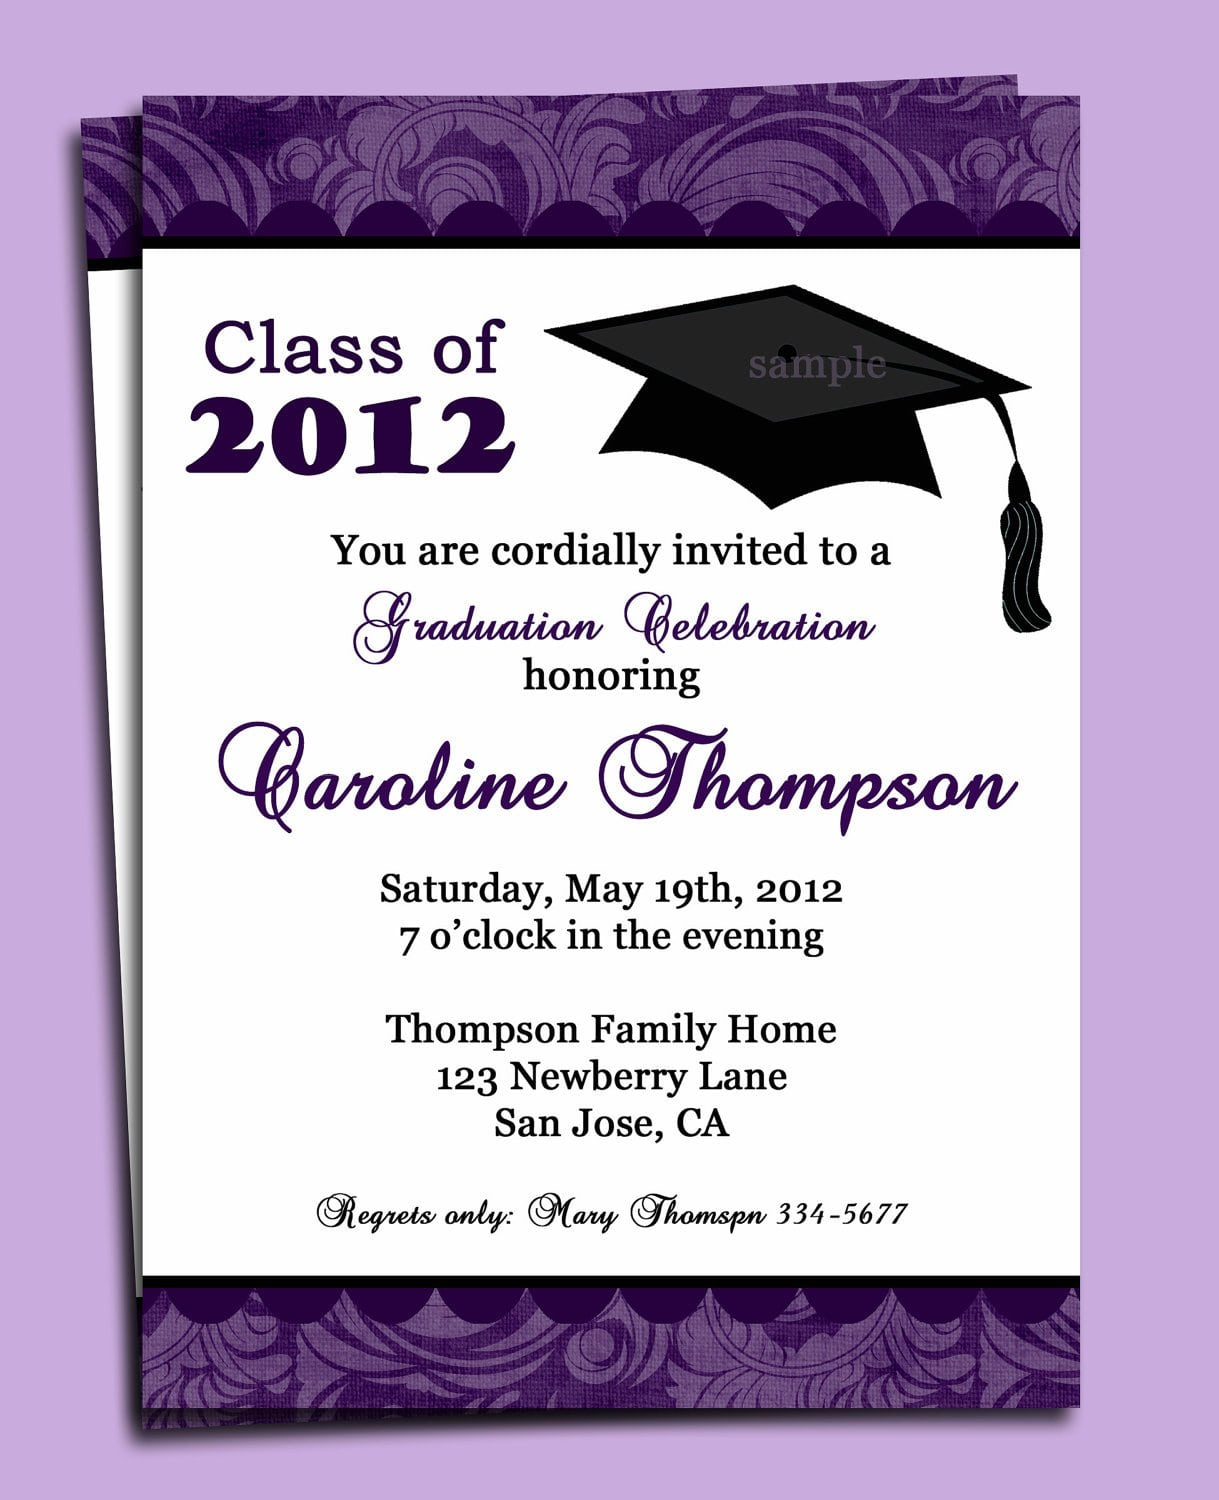 Party City Graduation Invitations could be nice ideas for your invitation template